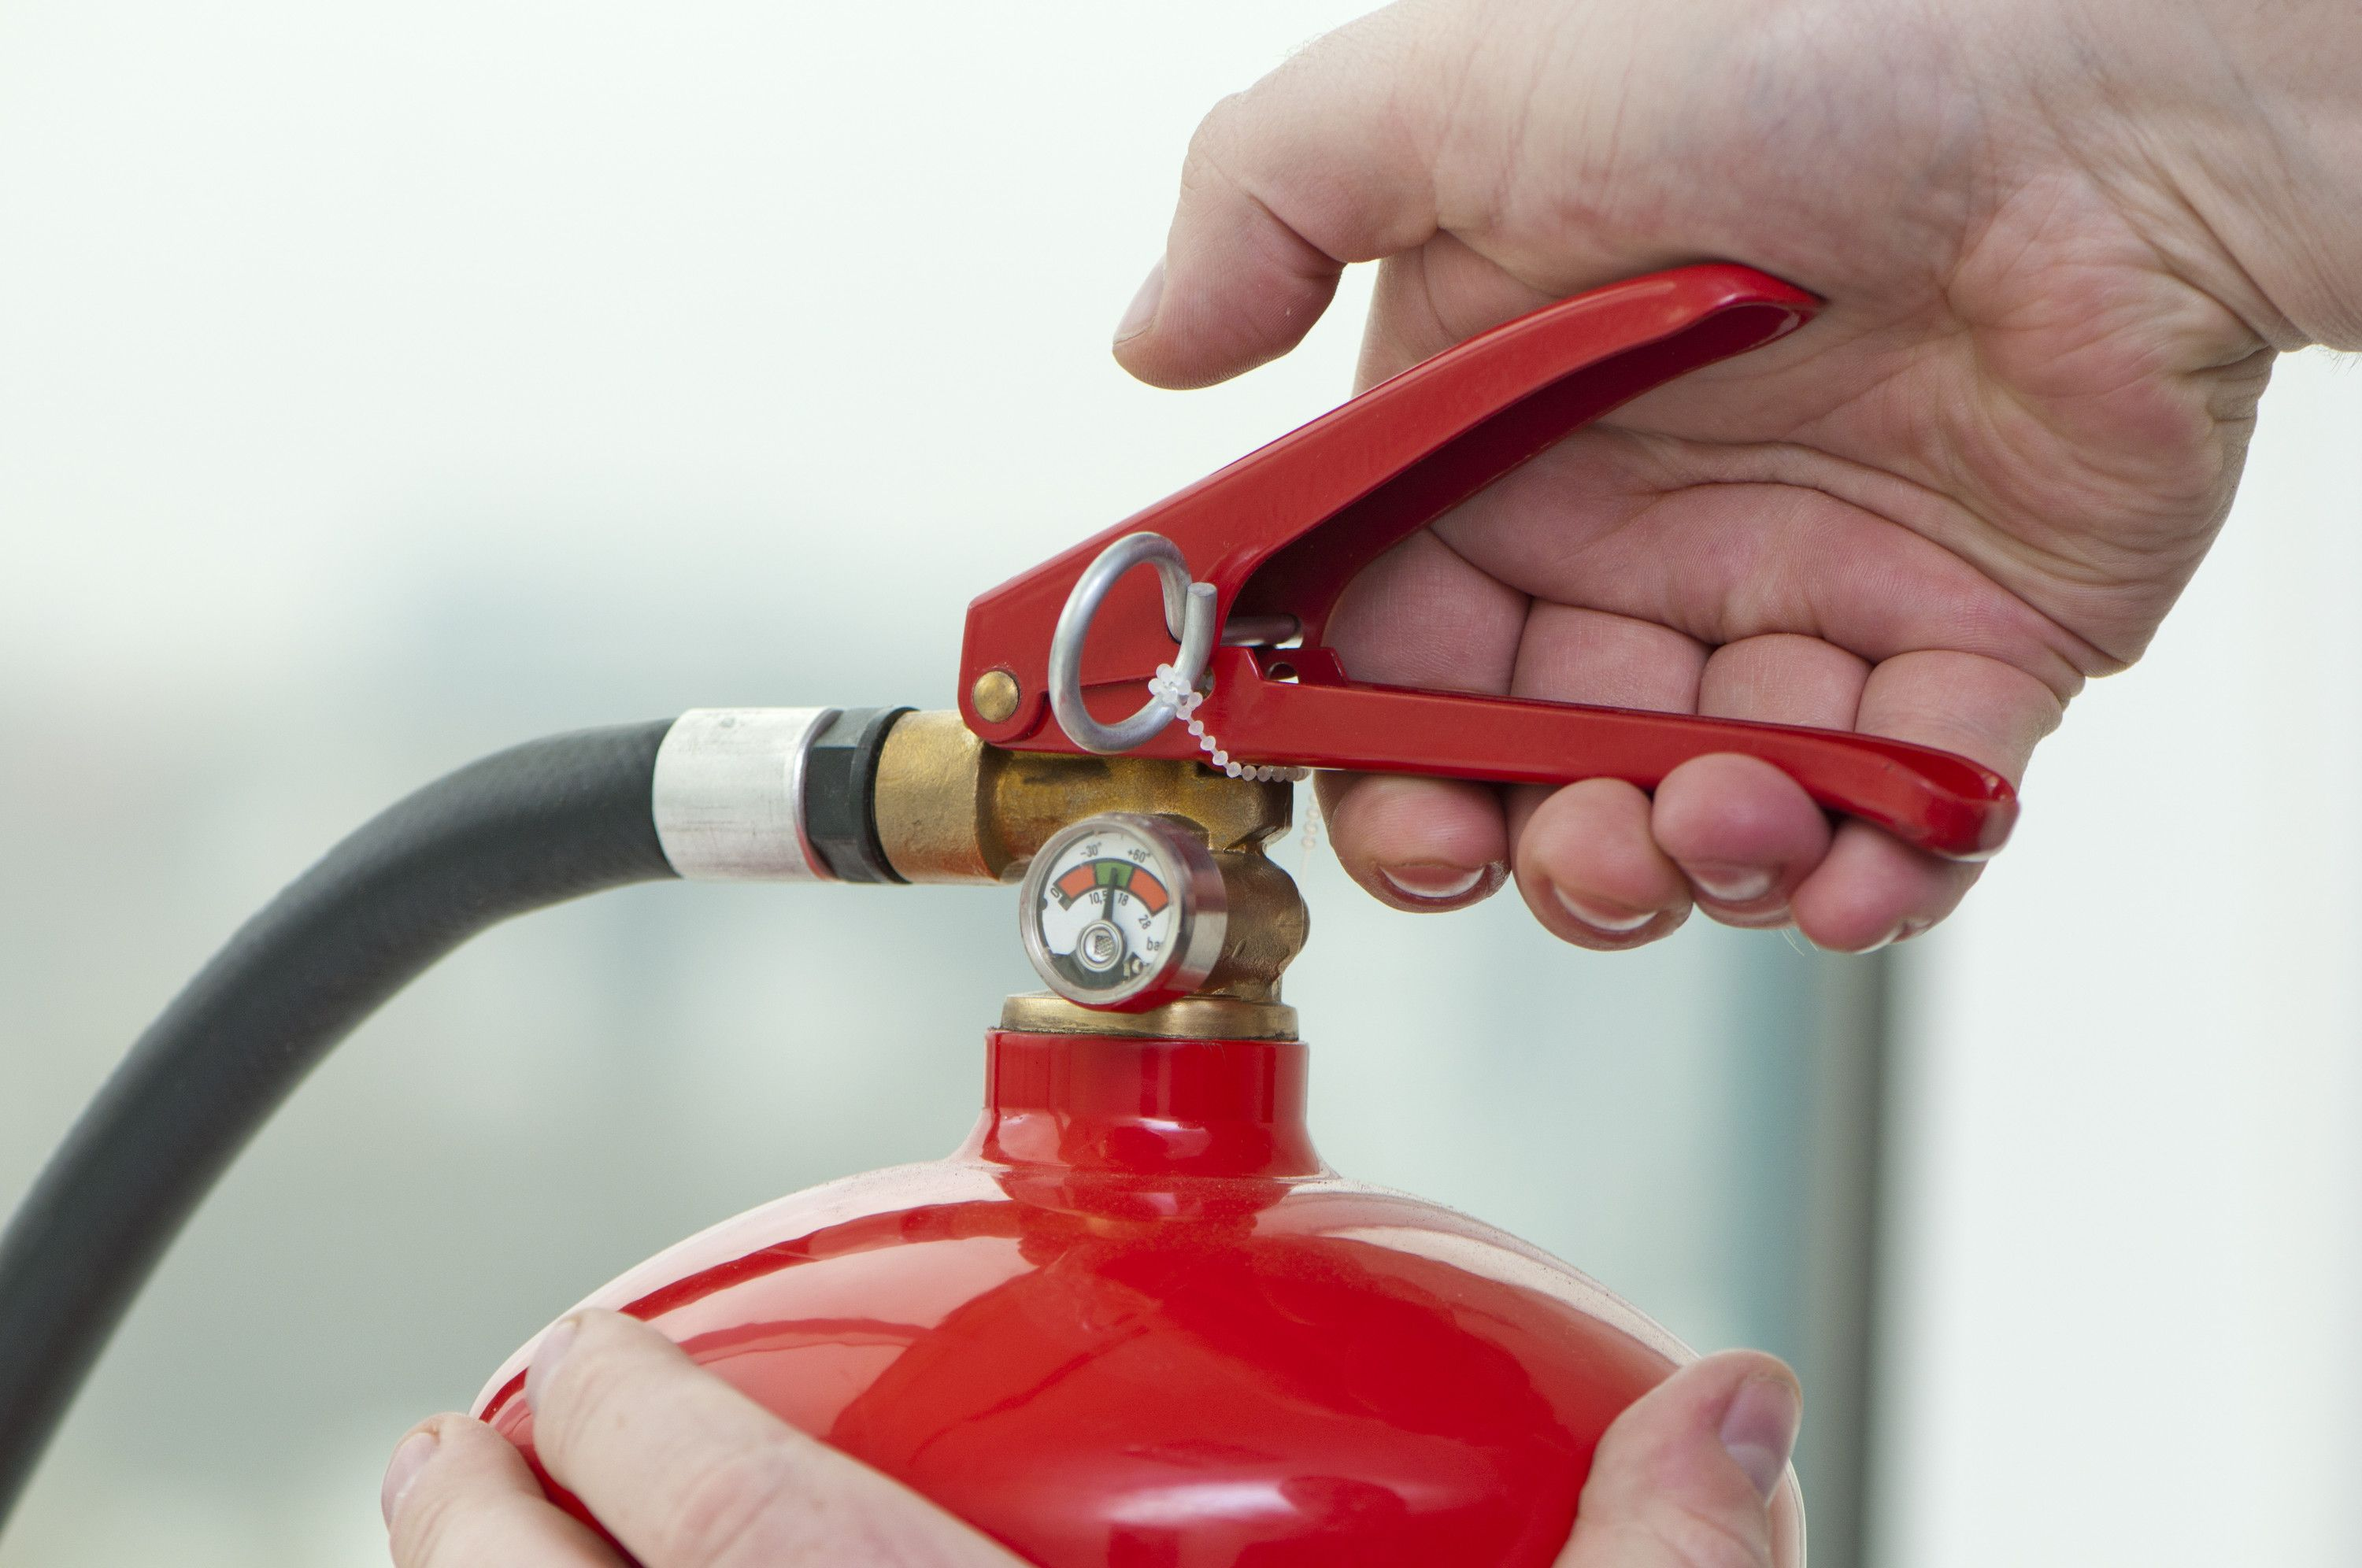 You can know more about the services on their site of: http://www.firesafe-au.com/